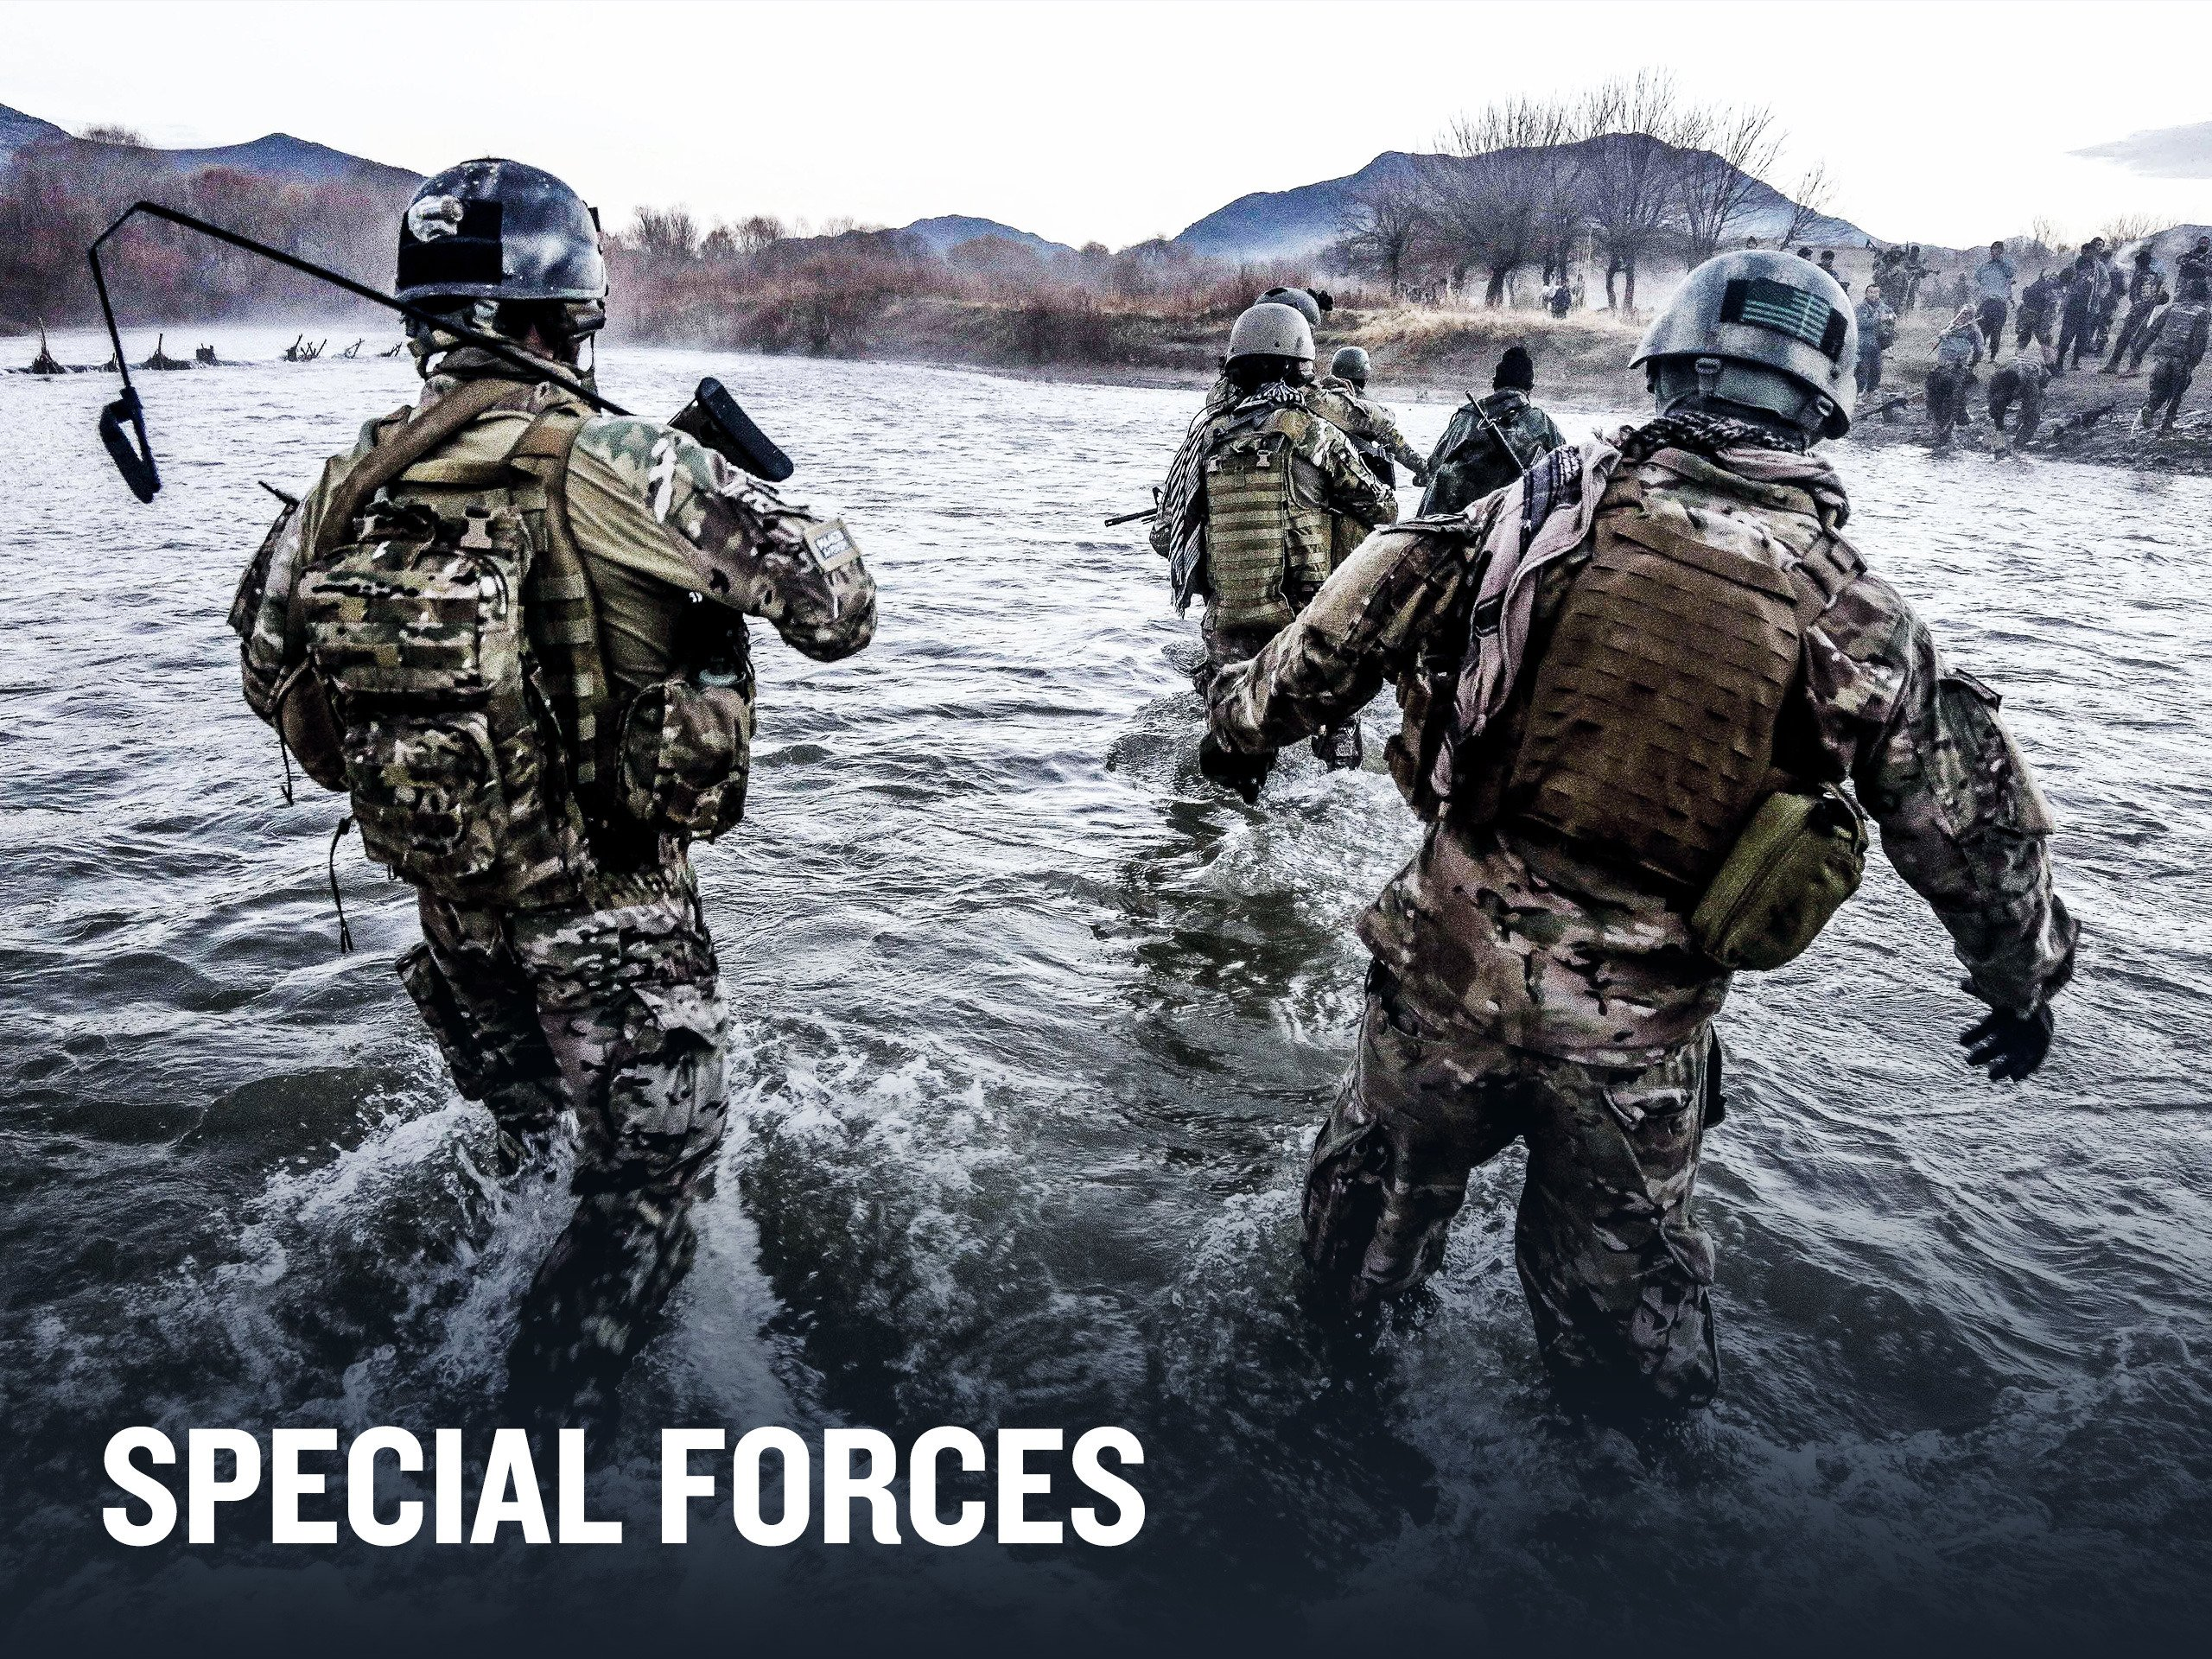 Special Forces Units 2604874 Hd Wallpaper Backgrounds Download